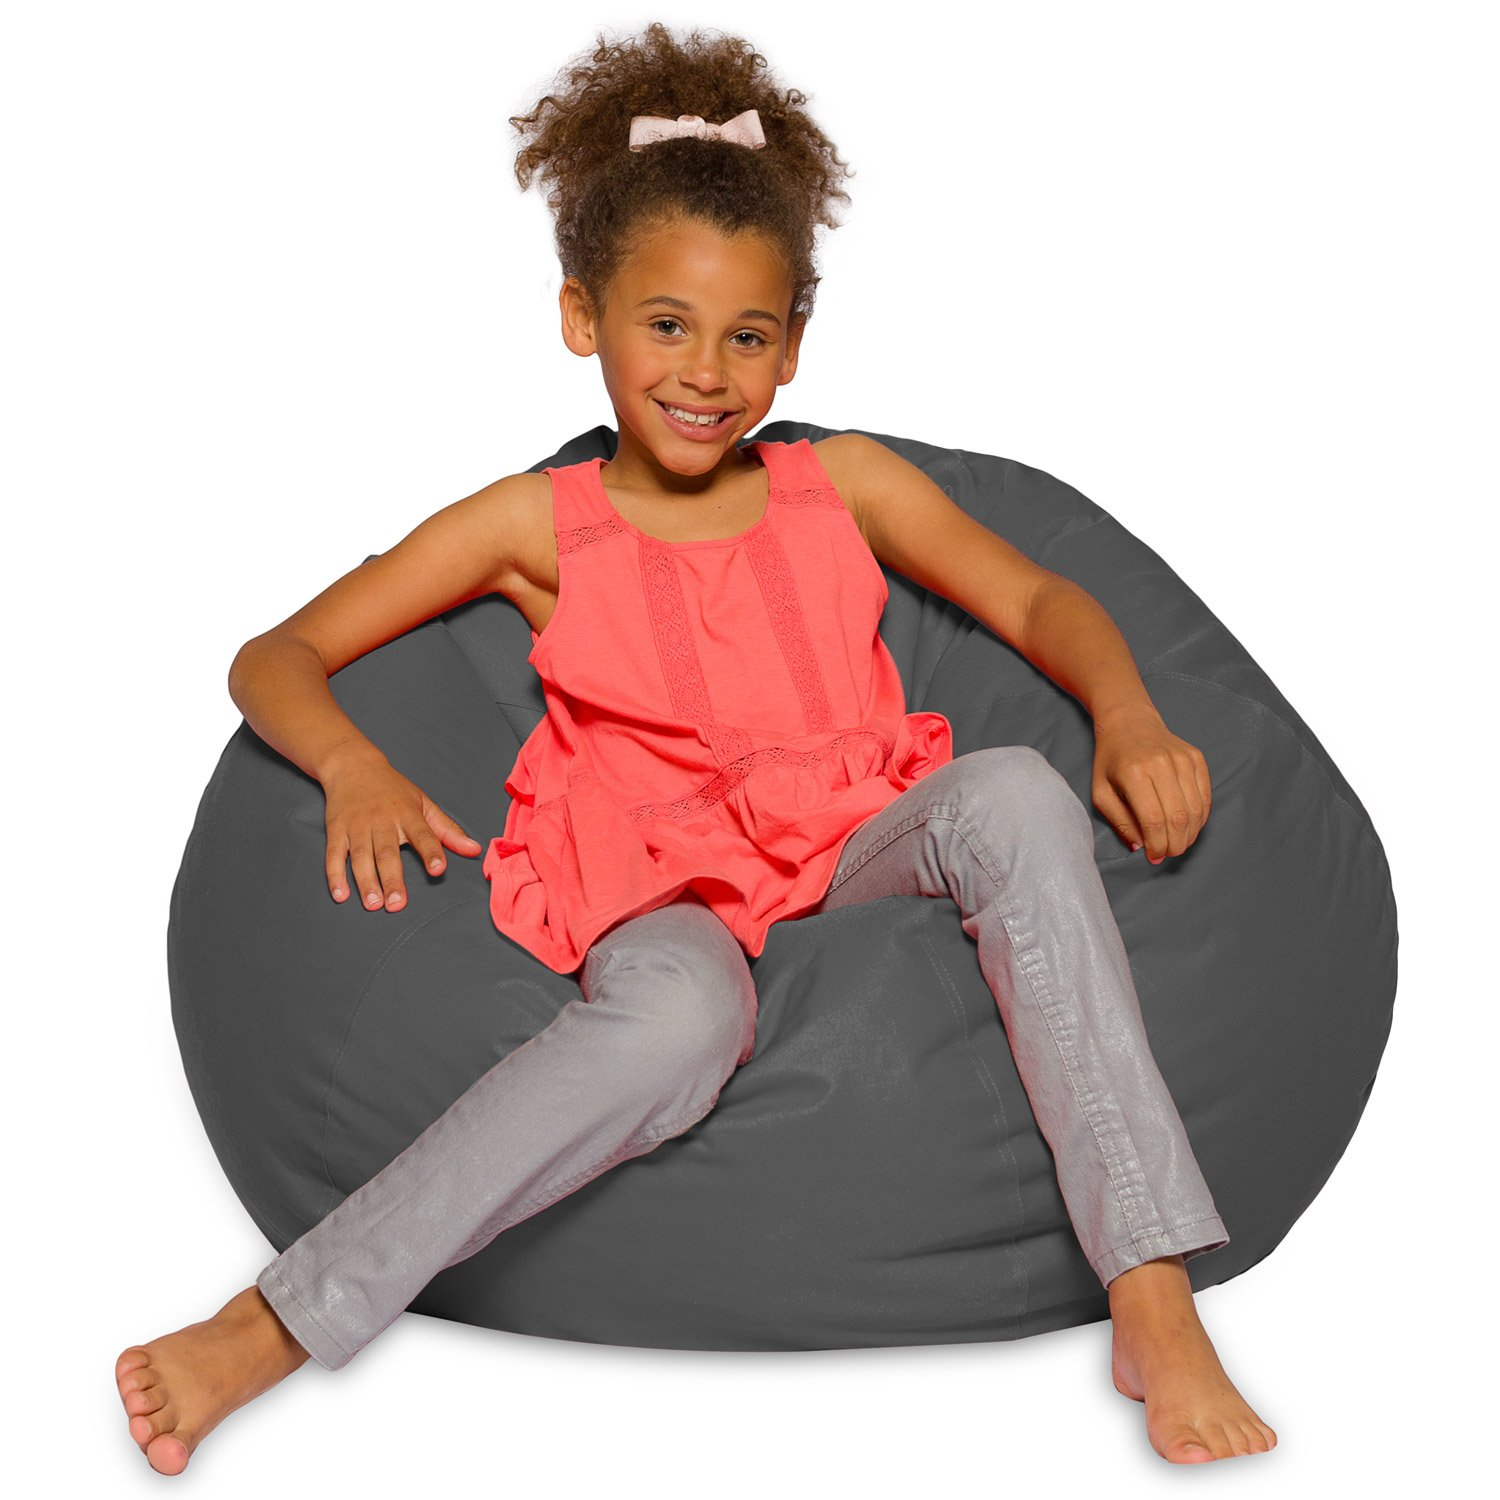 Big Comfy Bean Bag Chair: Posh Large Beanbag Chairs for Kids, Teens and Adults - Polyester Cloth Puff Sack Lounger Furniture for All Ages - 27 Inch - Heather Gray Posh Beanbags AMZ-27-HT-GRY